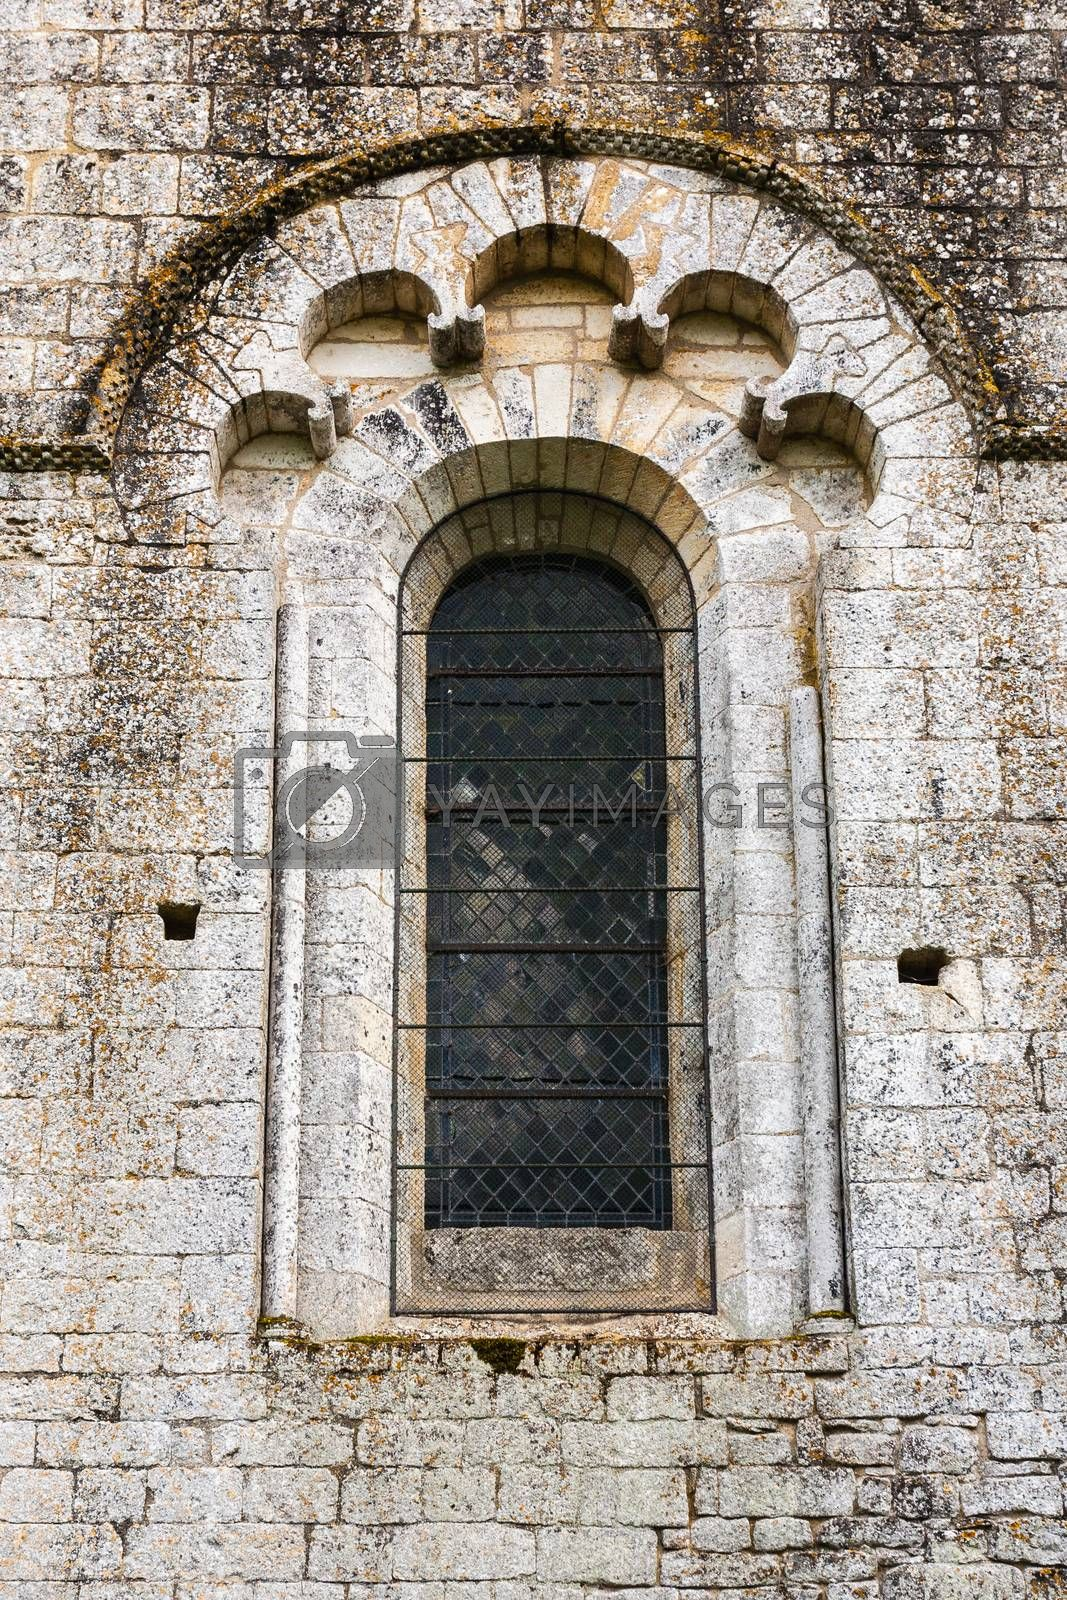 Fine romanesque window in the church of Saint Amand de Coly Fran by imagsan